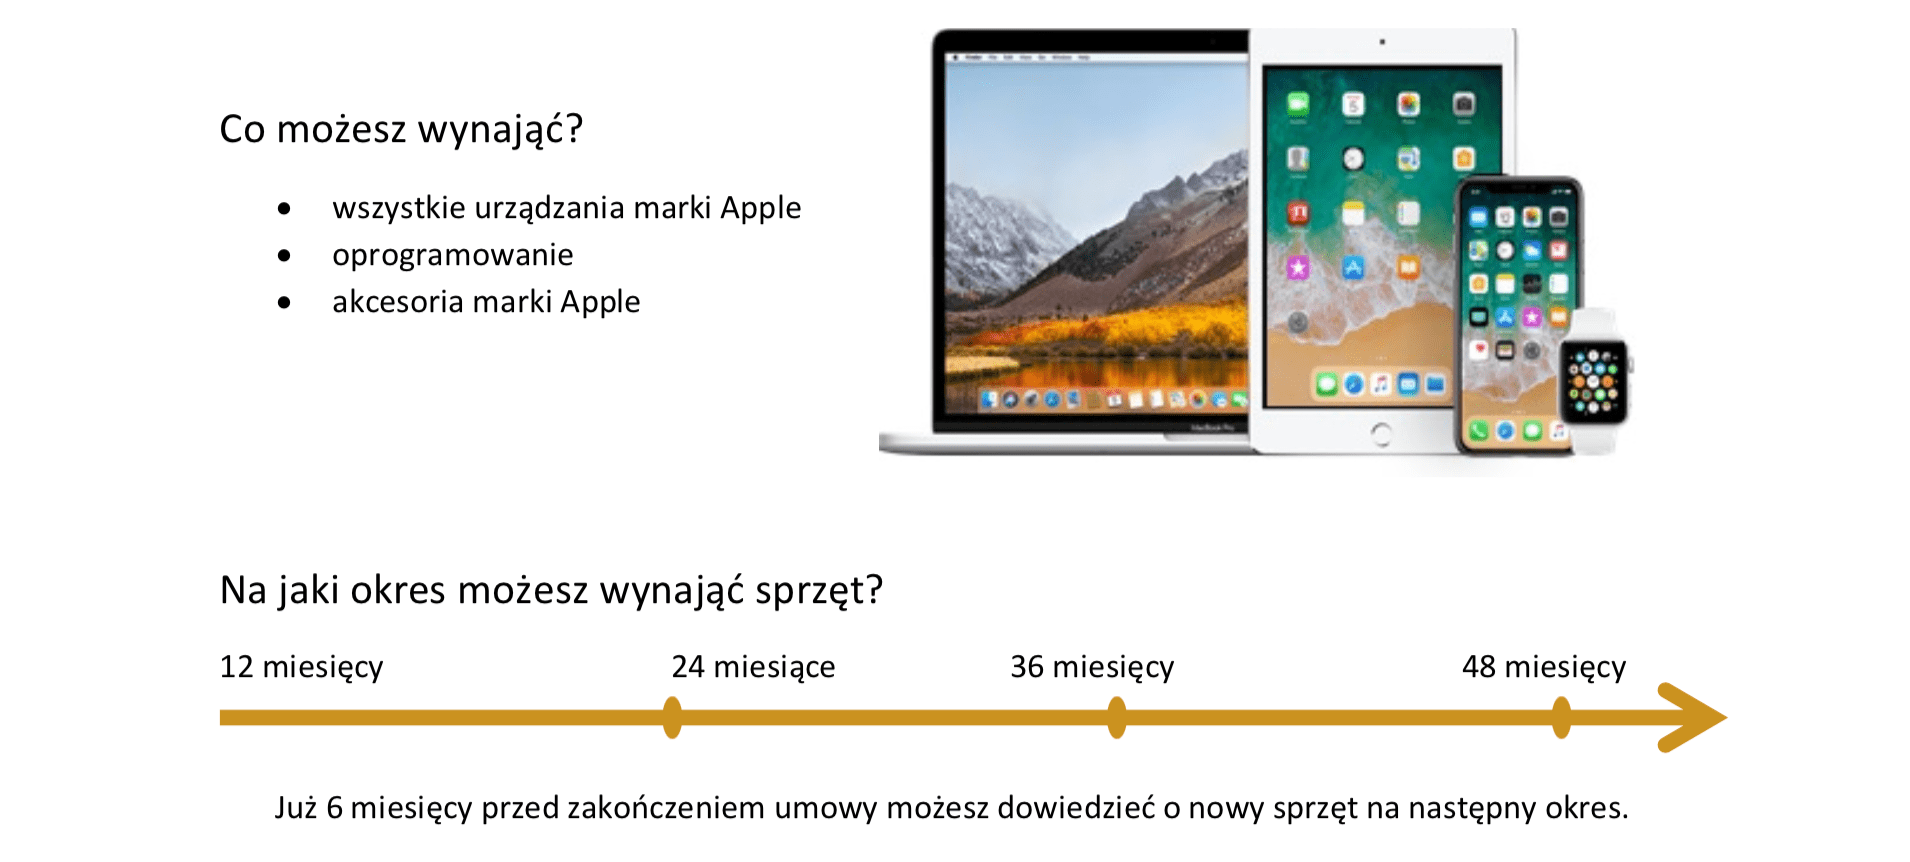 Apple Financial Services - jak to działa?